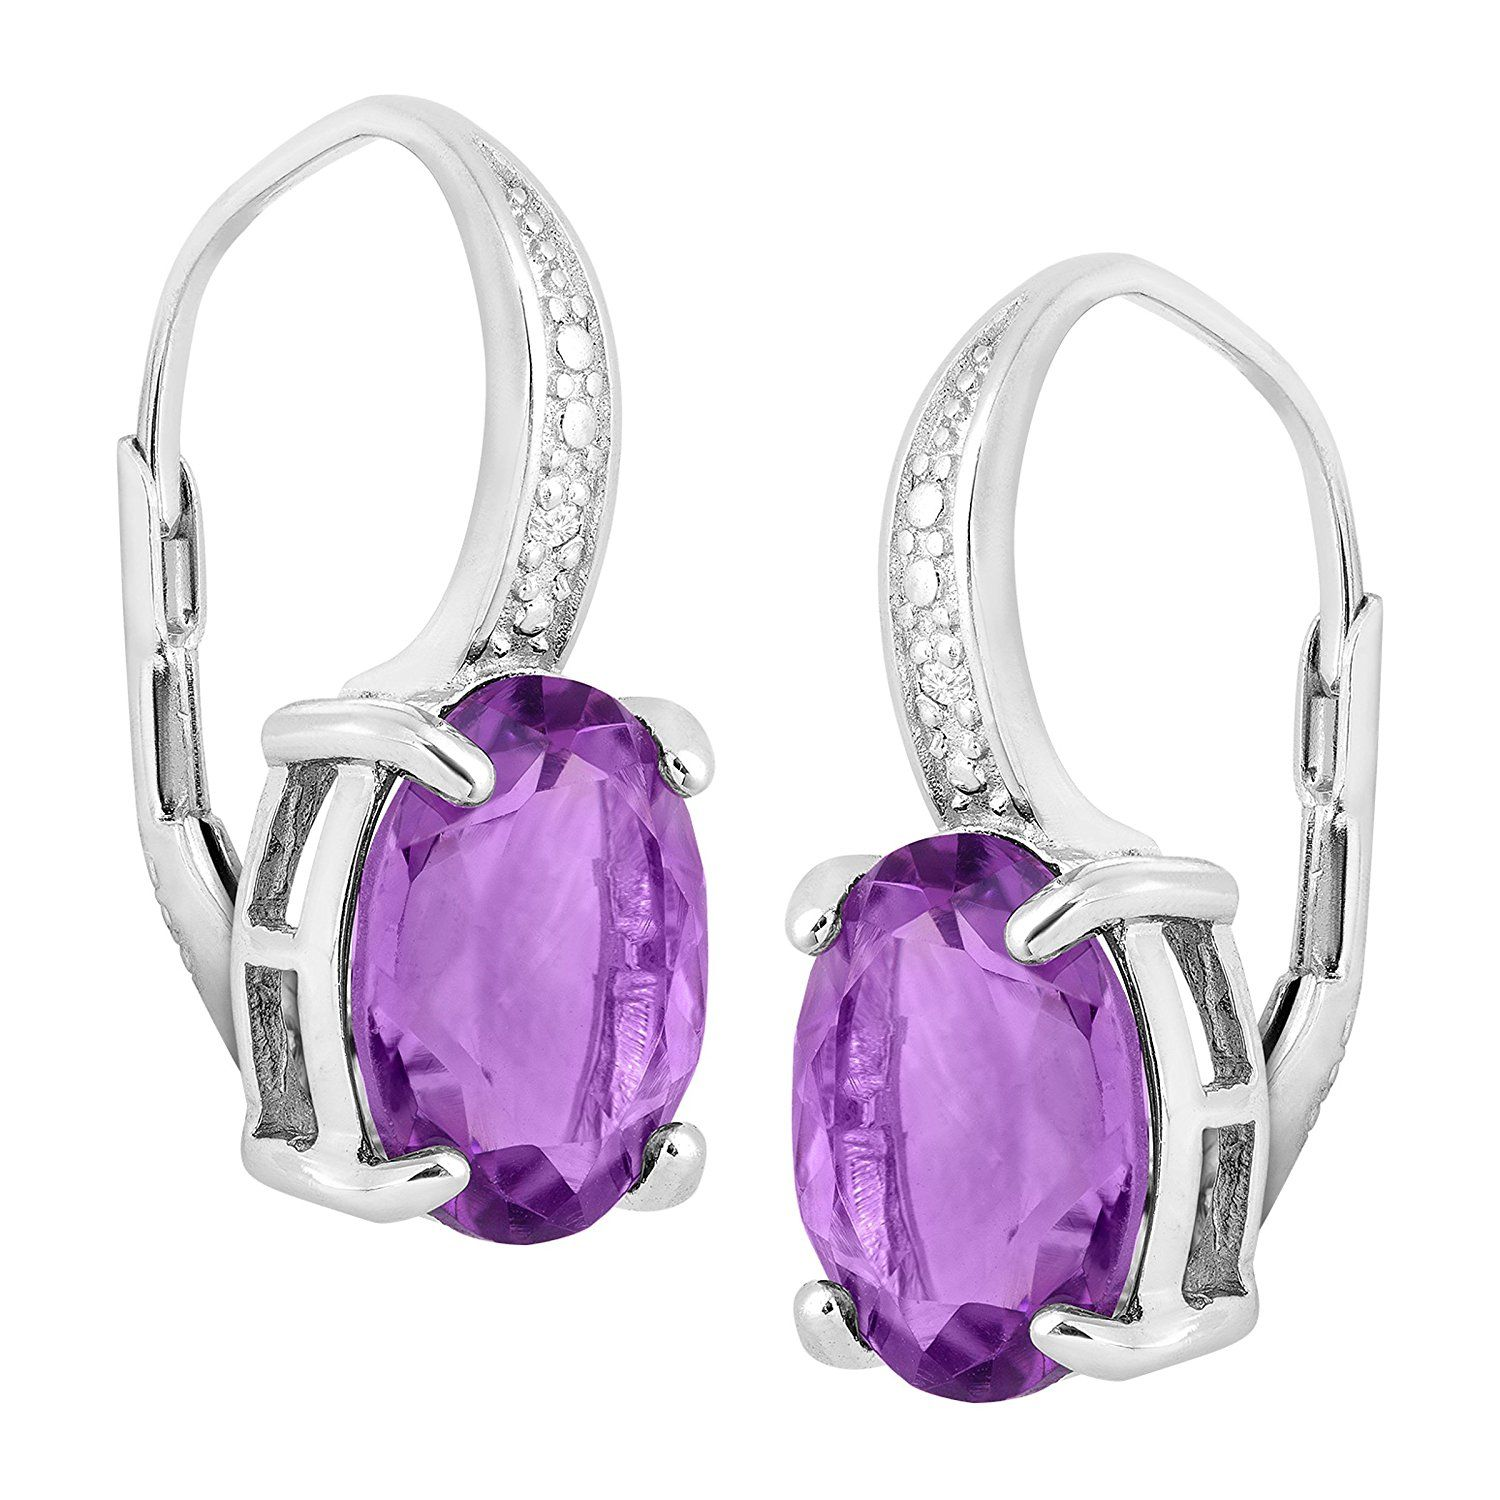 4 3 4 ct Natural Amethyst Leverback Earrings with Diamonds in